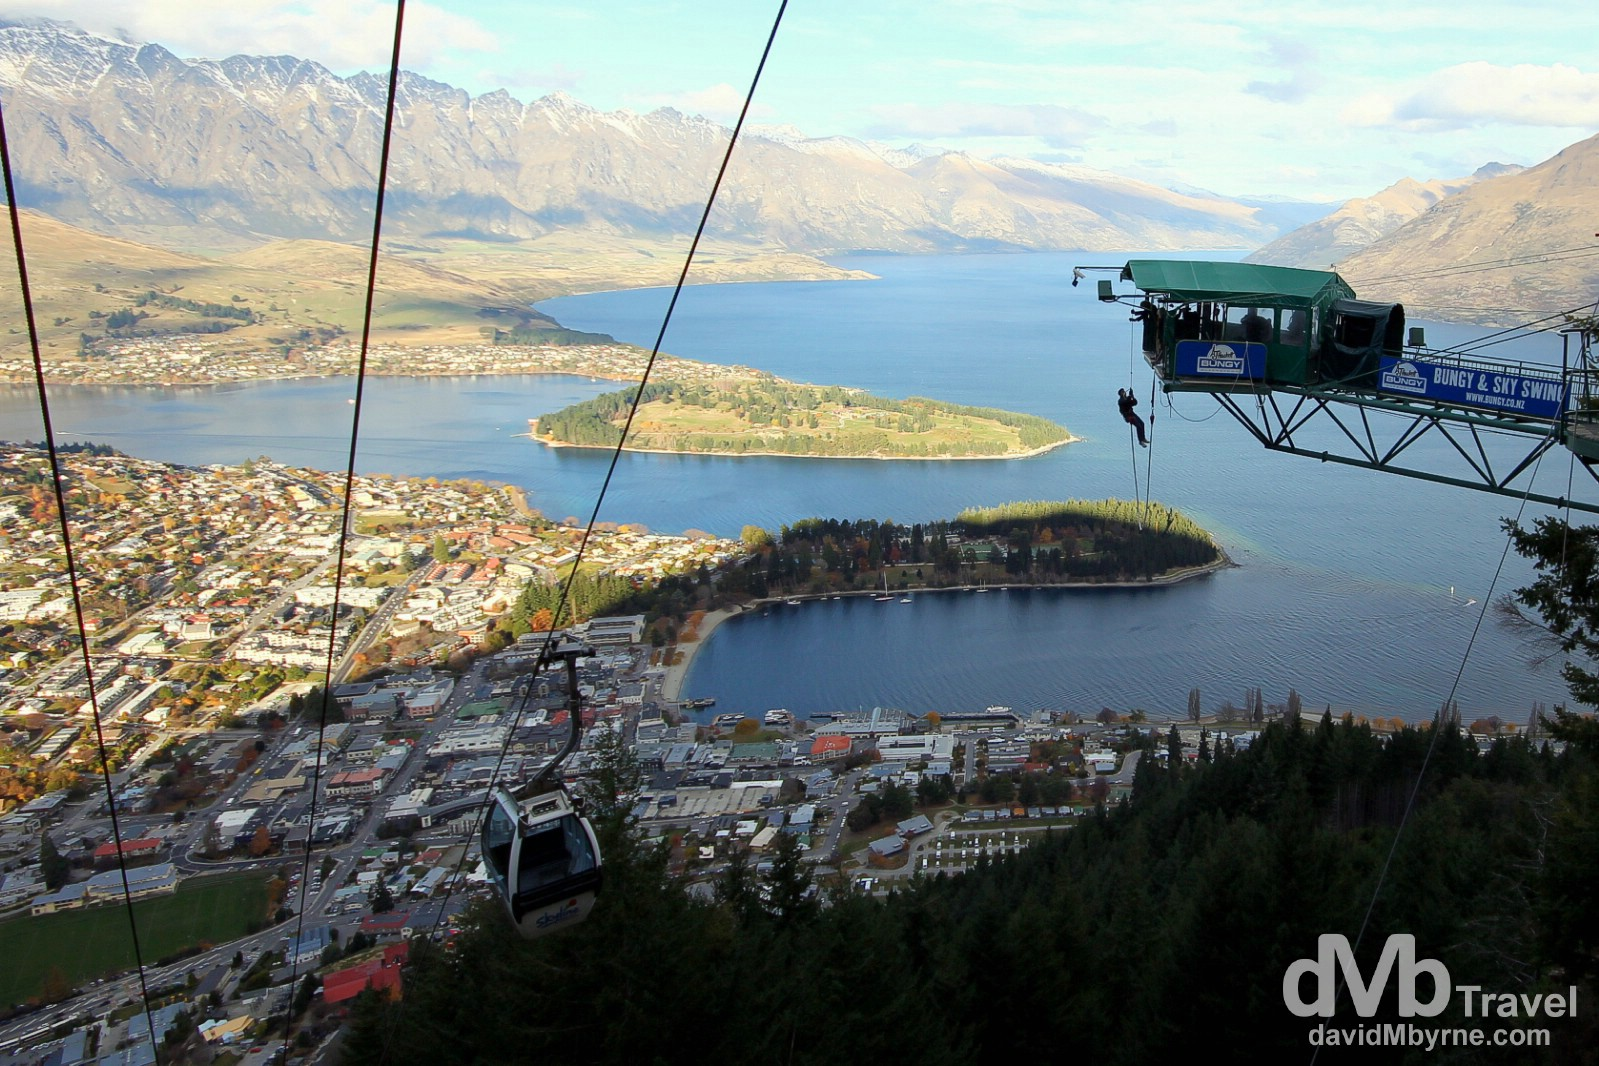 The Ledge Bungy as seen from The Skyline overlooking Queenstown, South Island, New Zealand. May 23rd 2012.